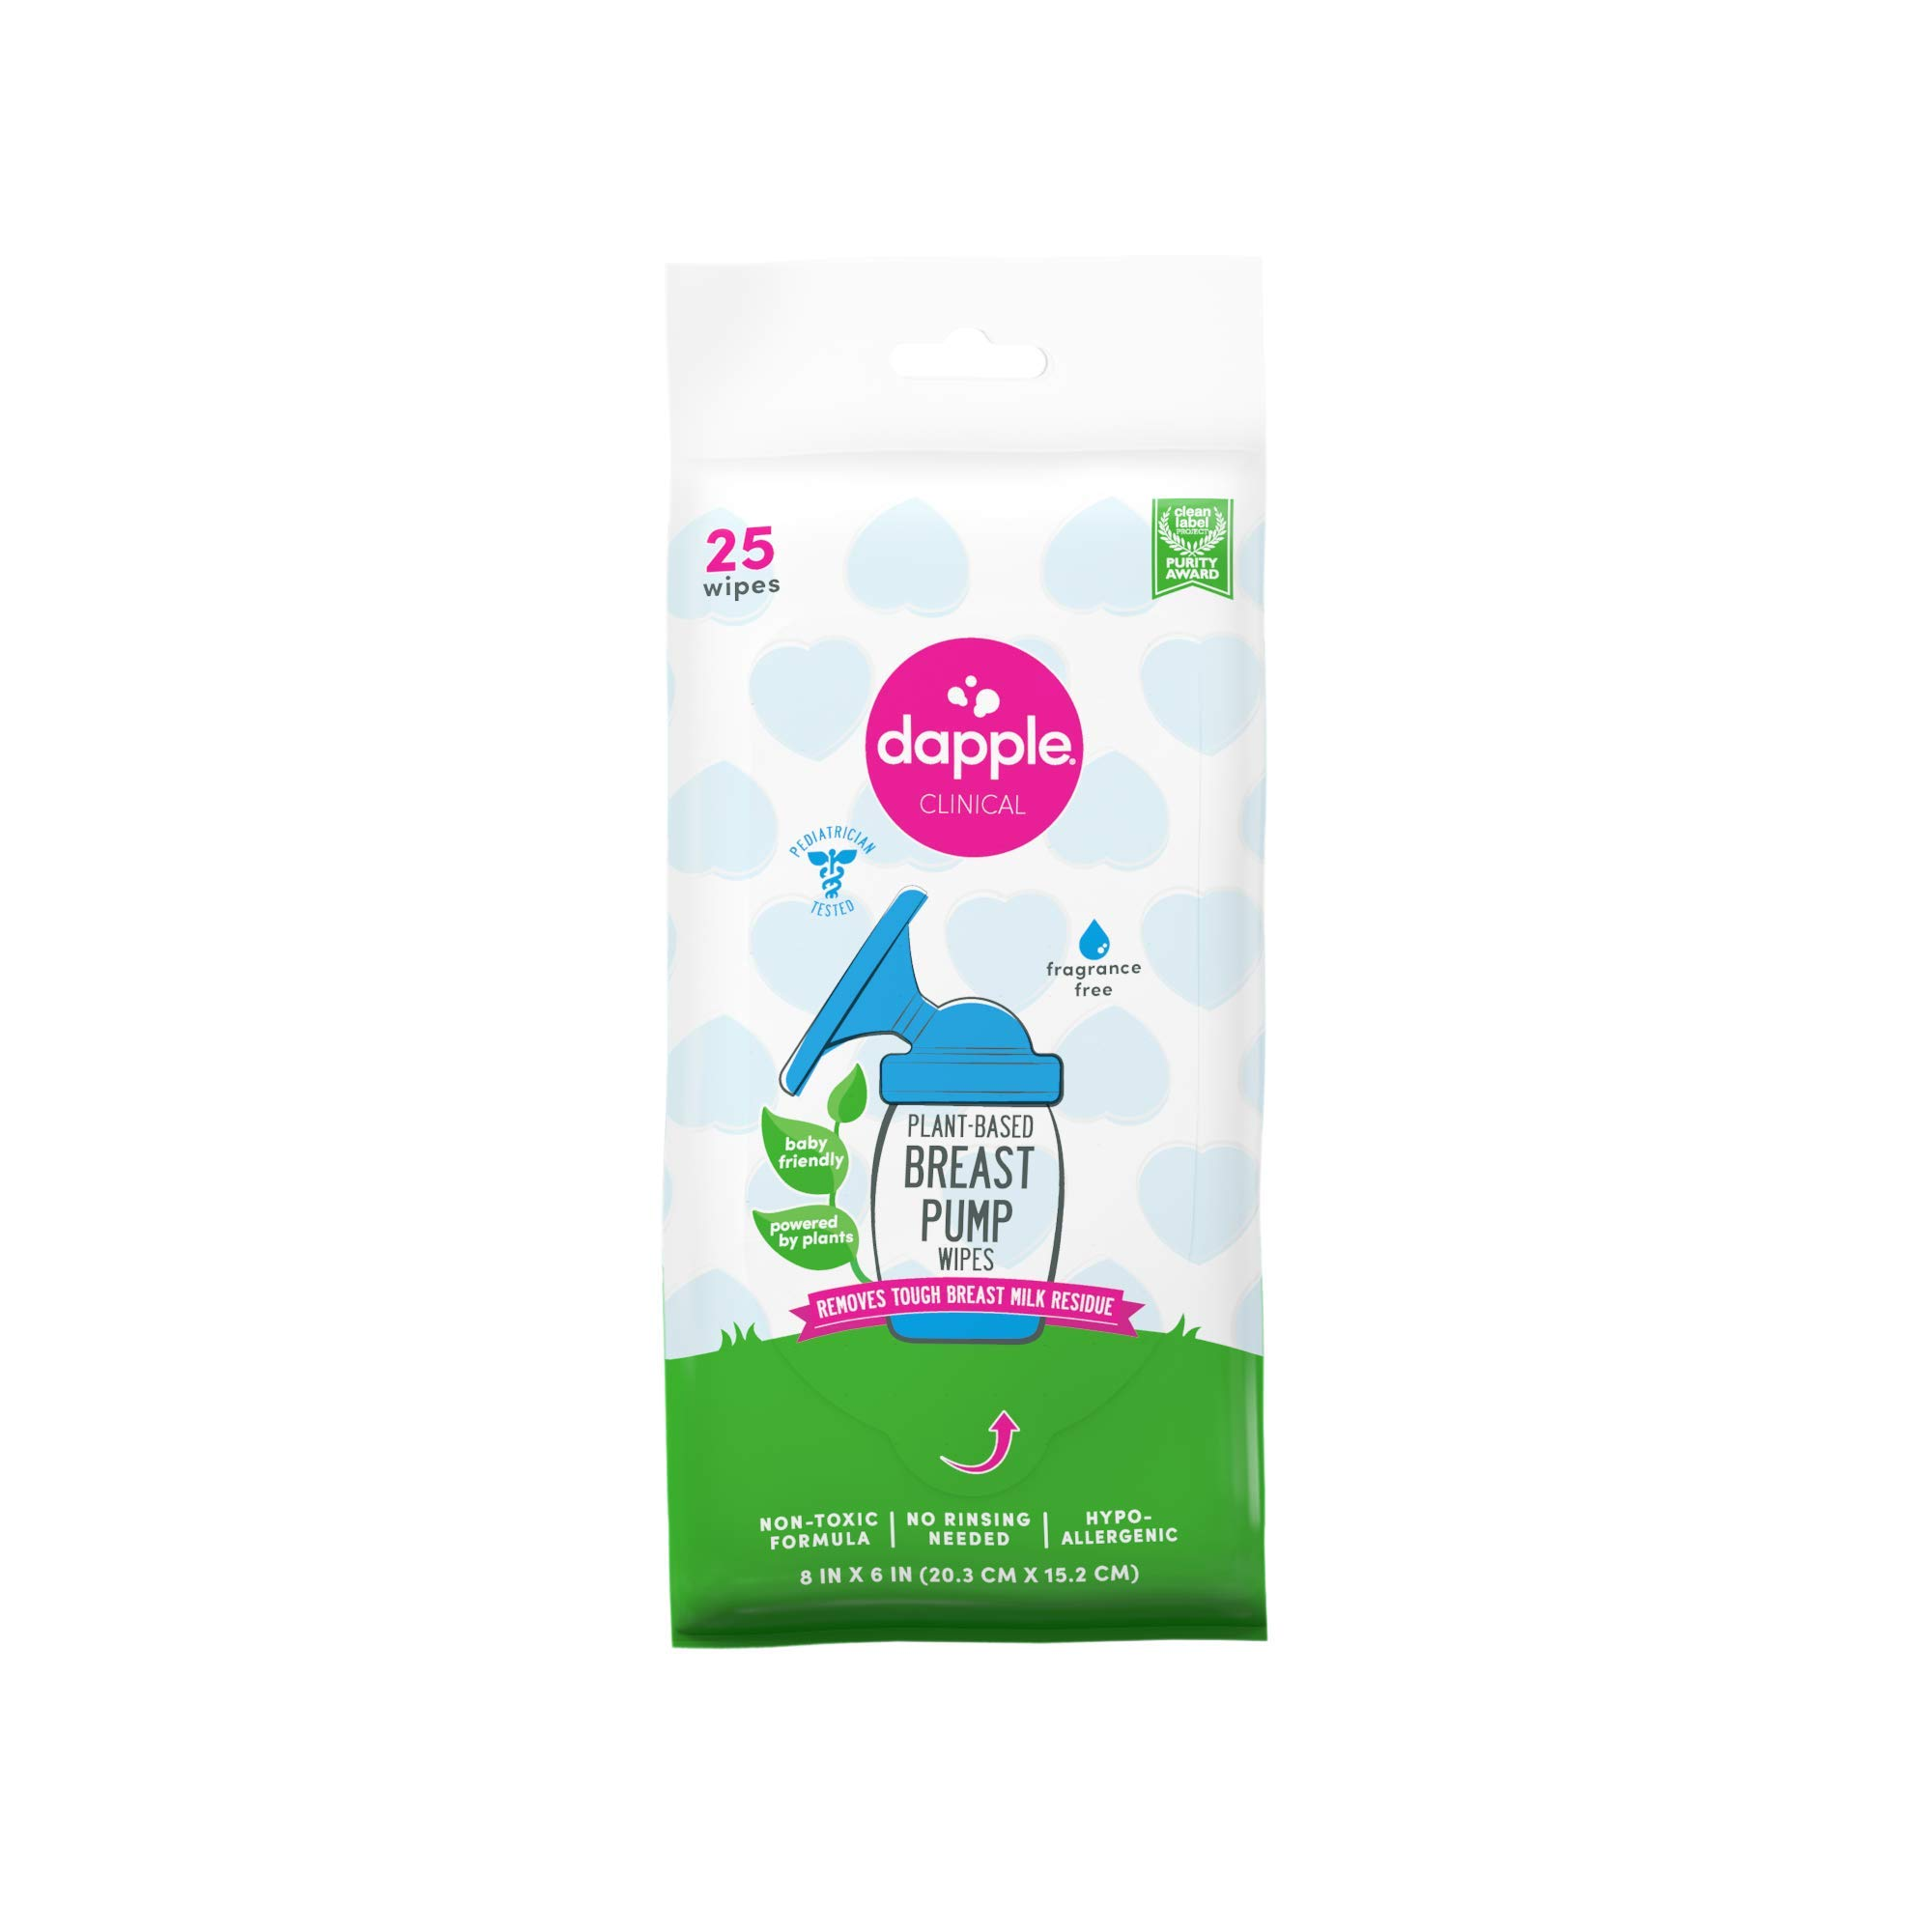 Dapple Breast Pump Cleaner Wipes, Plant-Based, Fragrance Free, 25 Count, Hypoallergenic, Breast Pump Cleaning Wipes, Great for Cleaning Breast Pump Parts